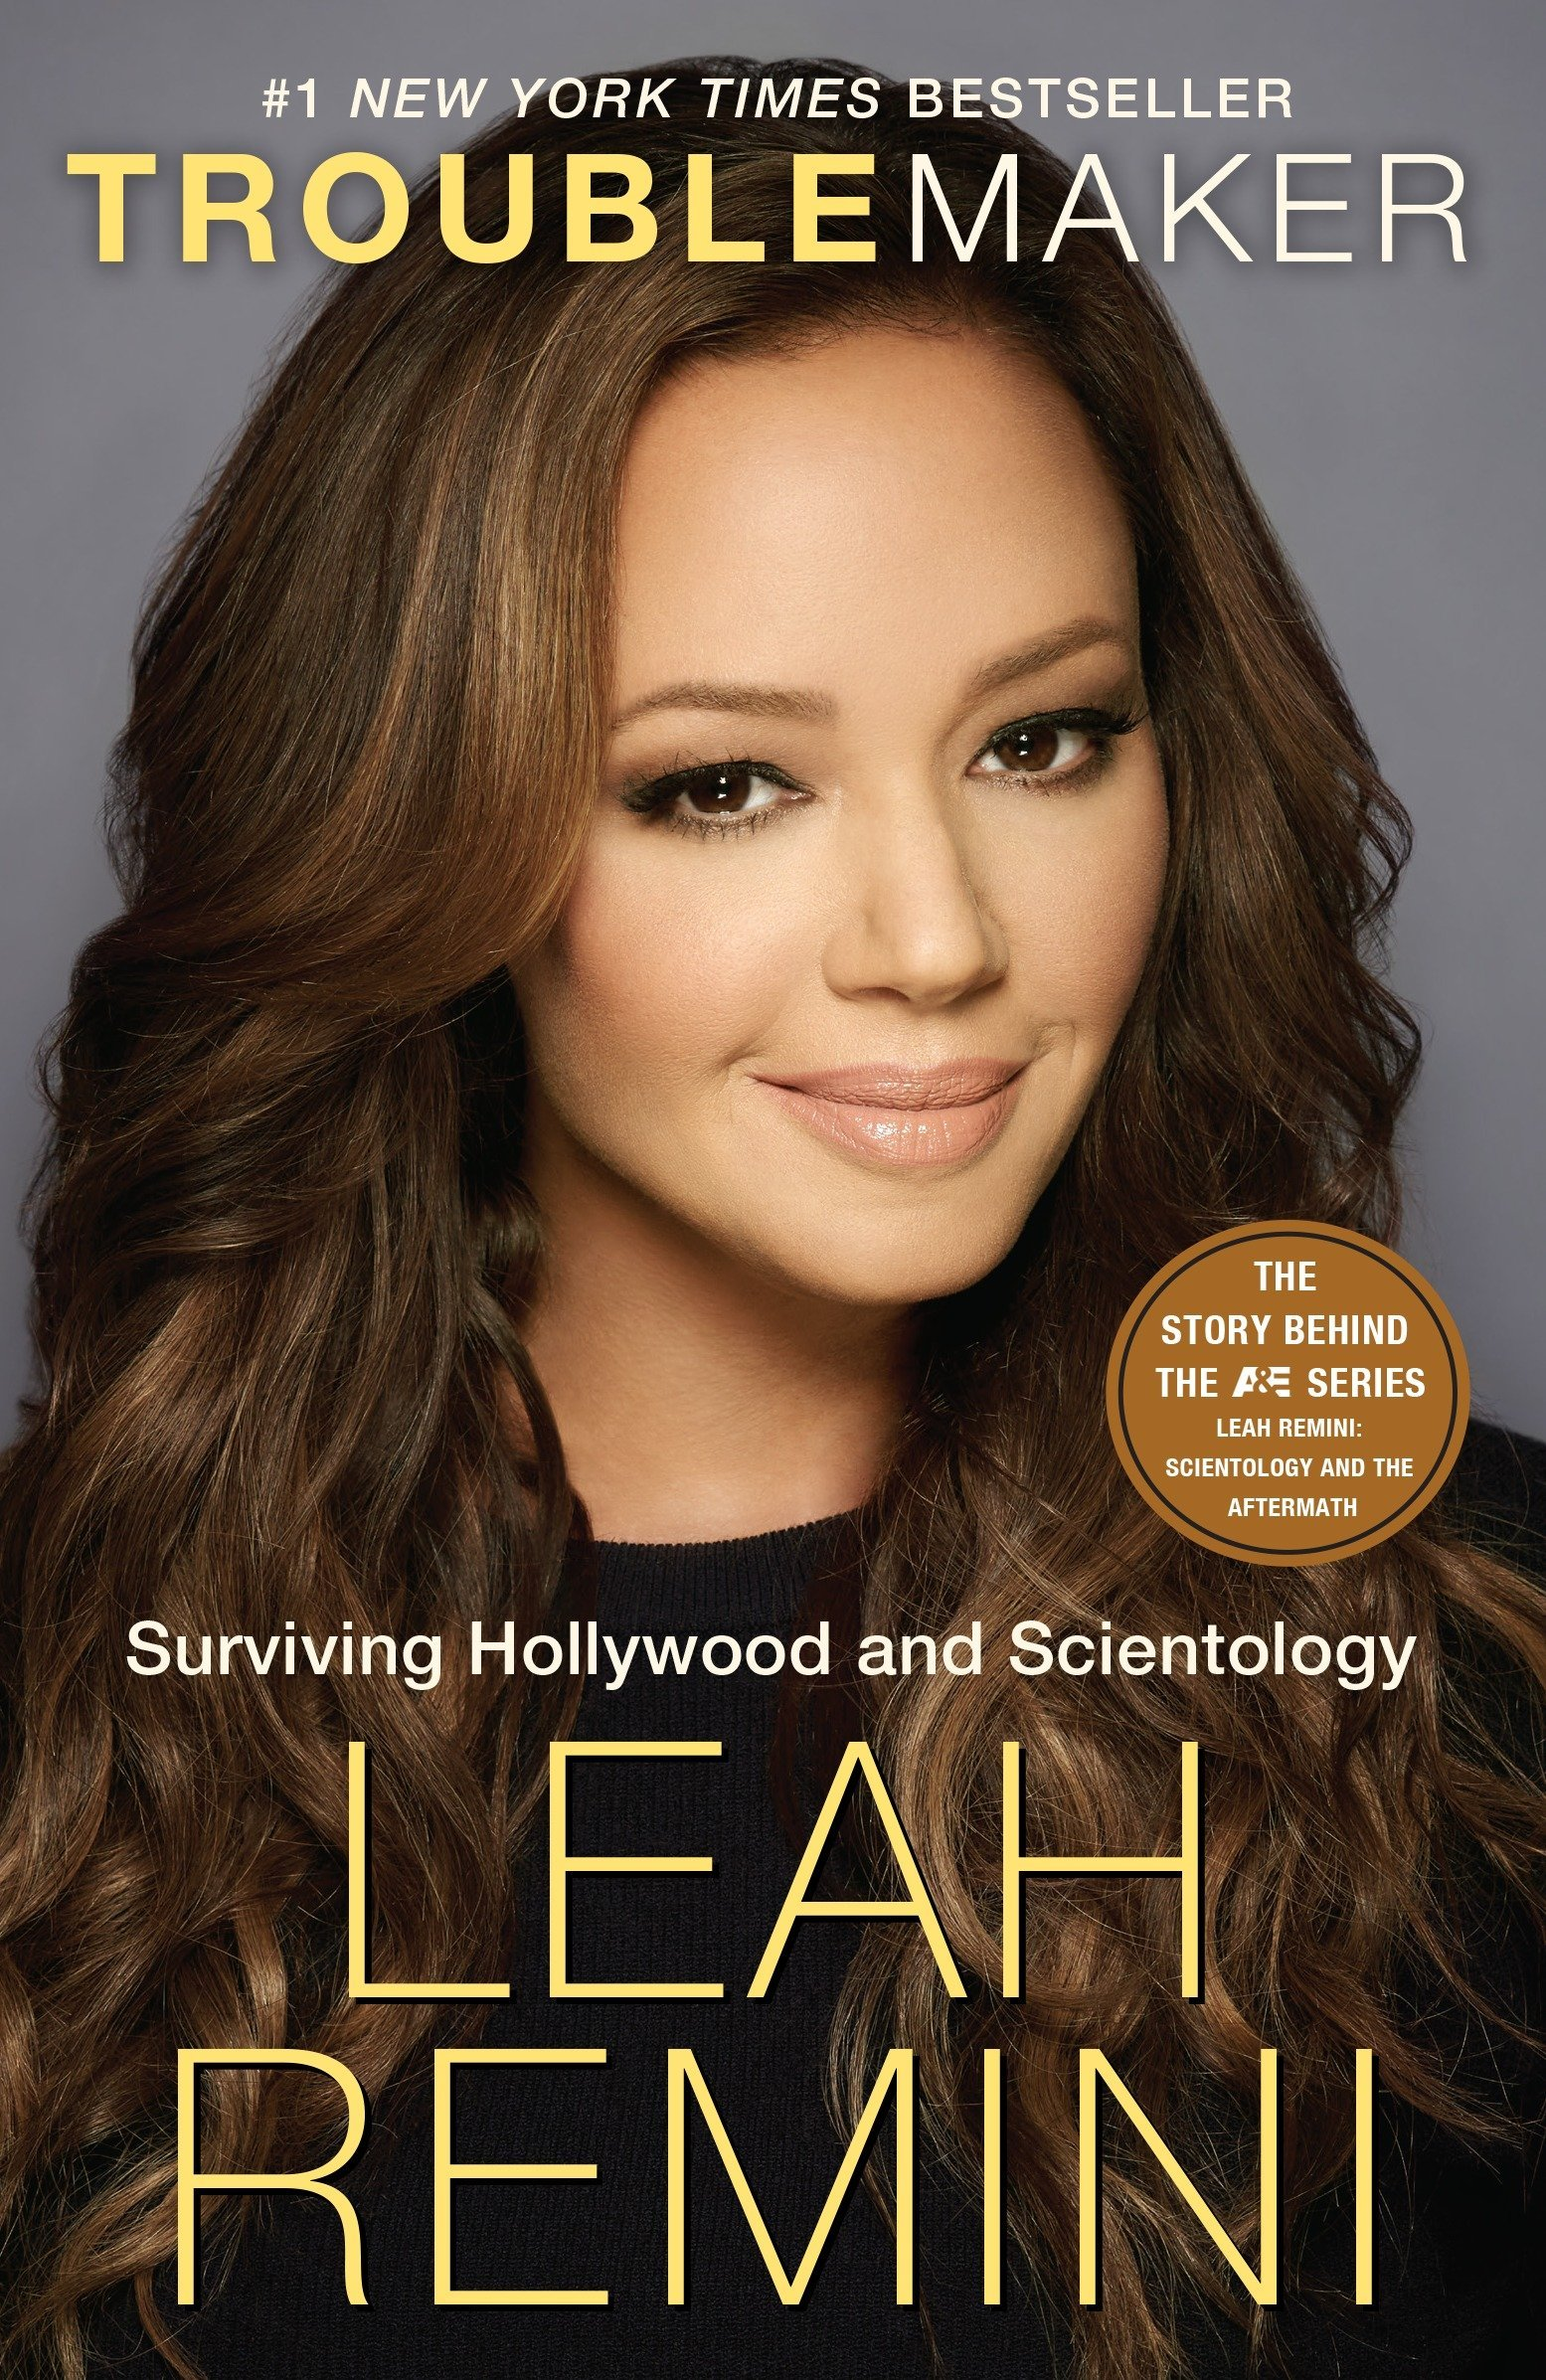 #1 NEW YORK TIMES BESTSELLERAn eye-opening, no-holds-barred memoir about life in the Church of Scientology, now with a new afterword by the author—the outspoken actress and star of the A&E docuseries Leah Remini: Scientology and the Aftermath -